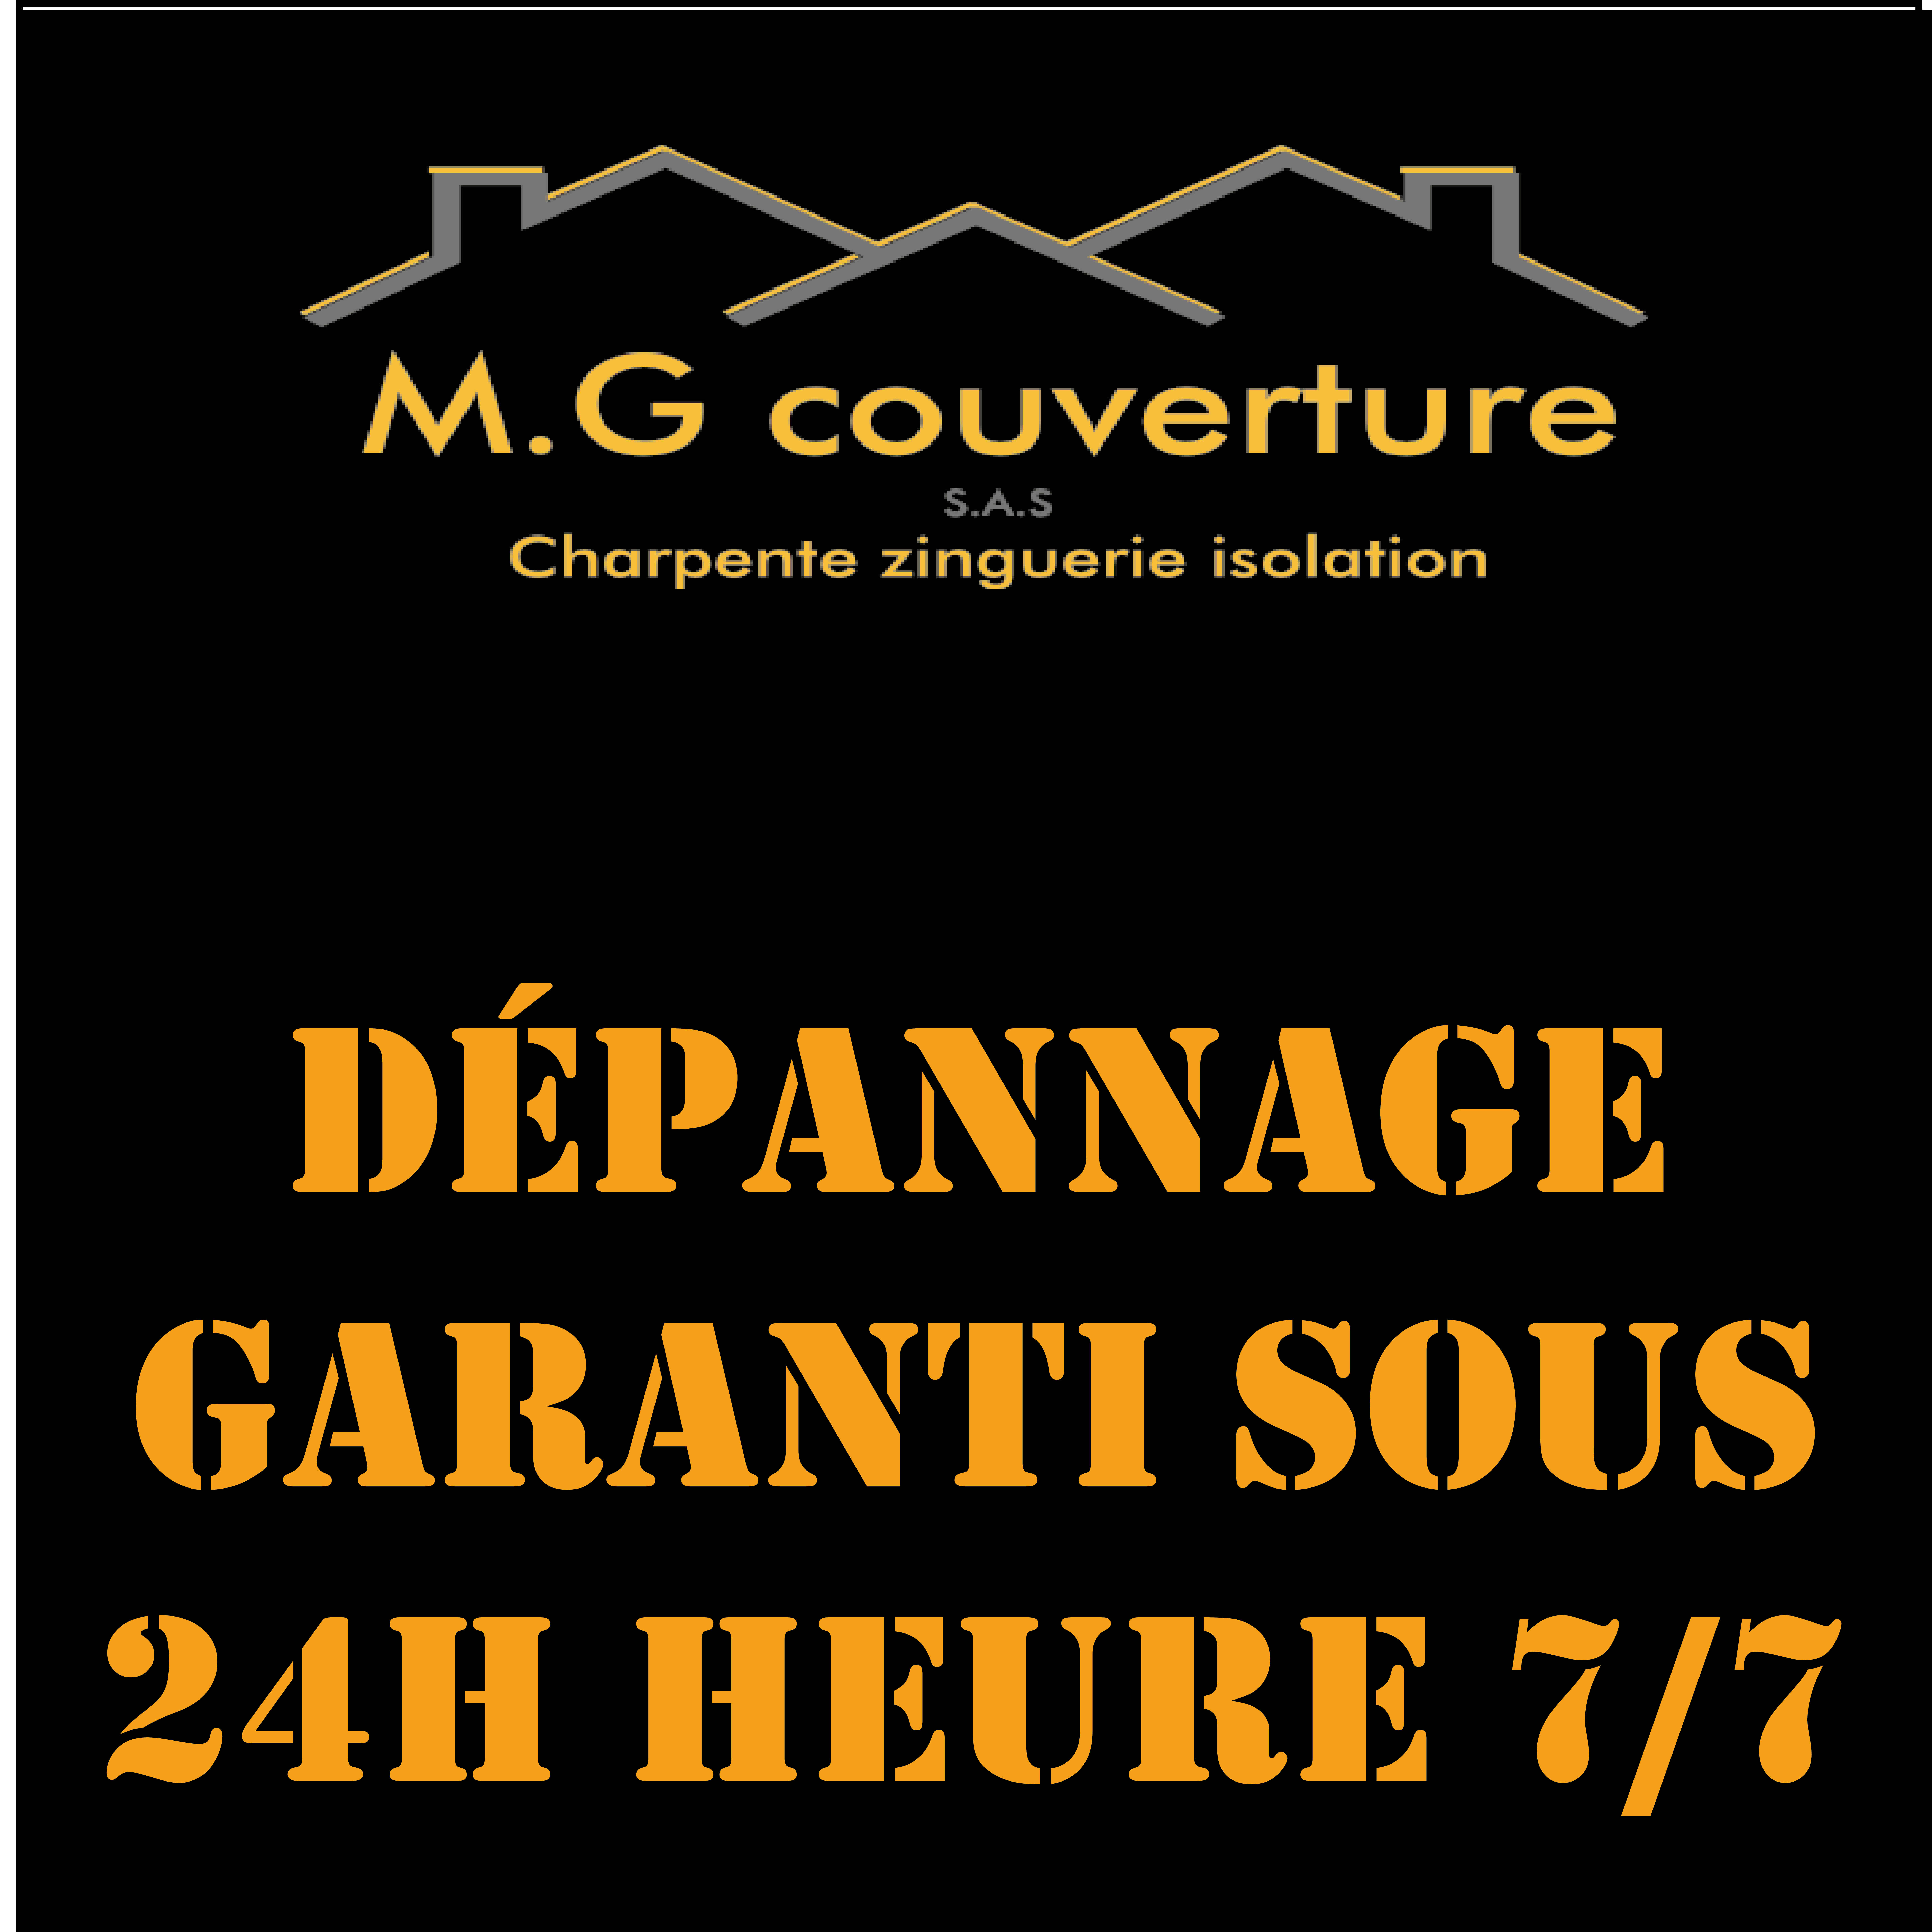 MG Couverture